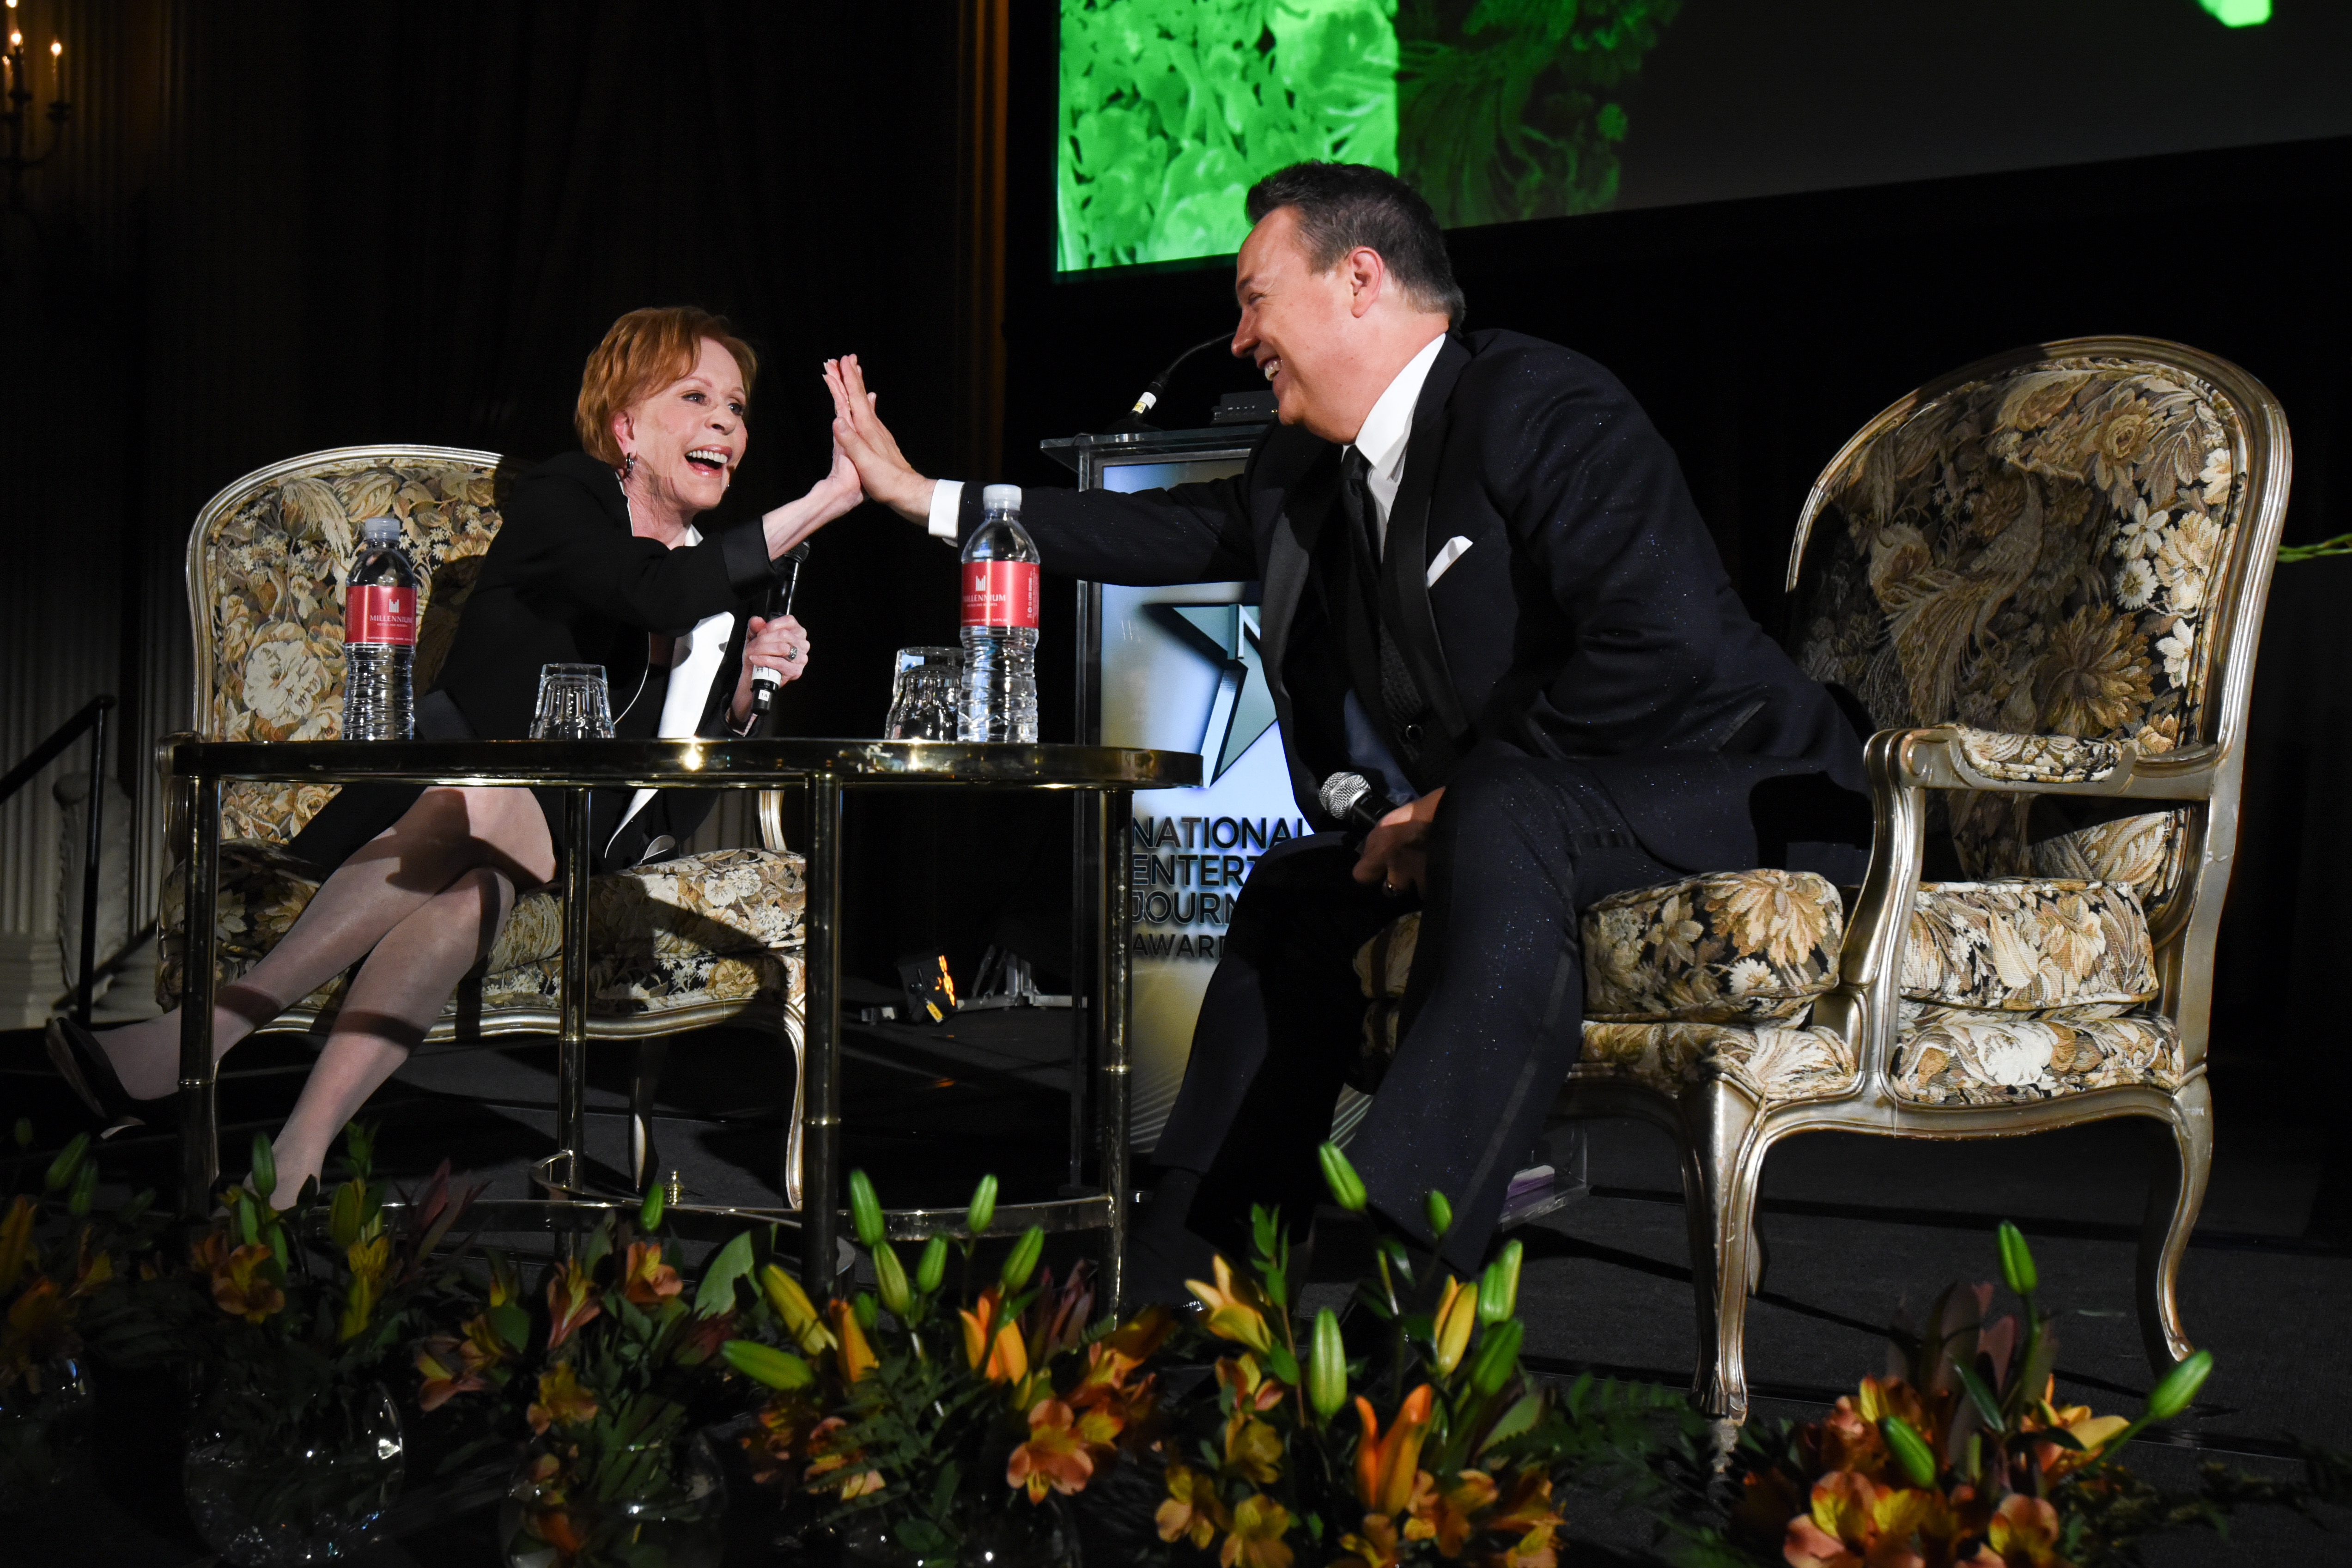 The 2018 11th Annual National Arts & Entertainment 'NAEJ' Awards Honoring Carol Burnett